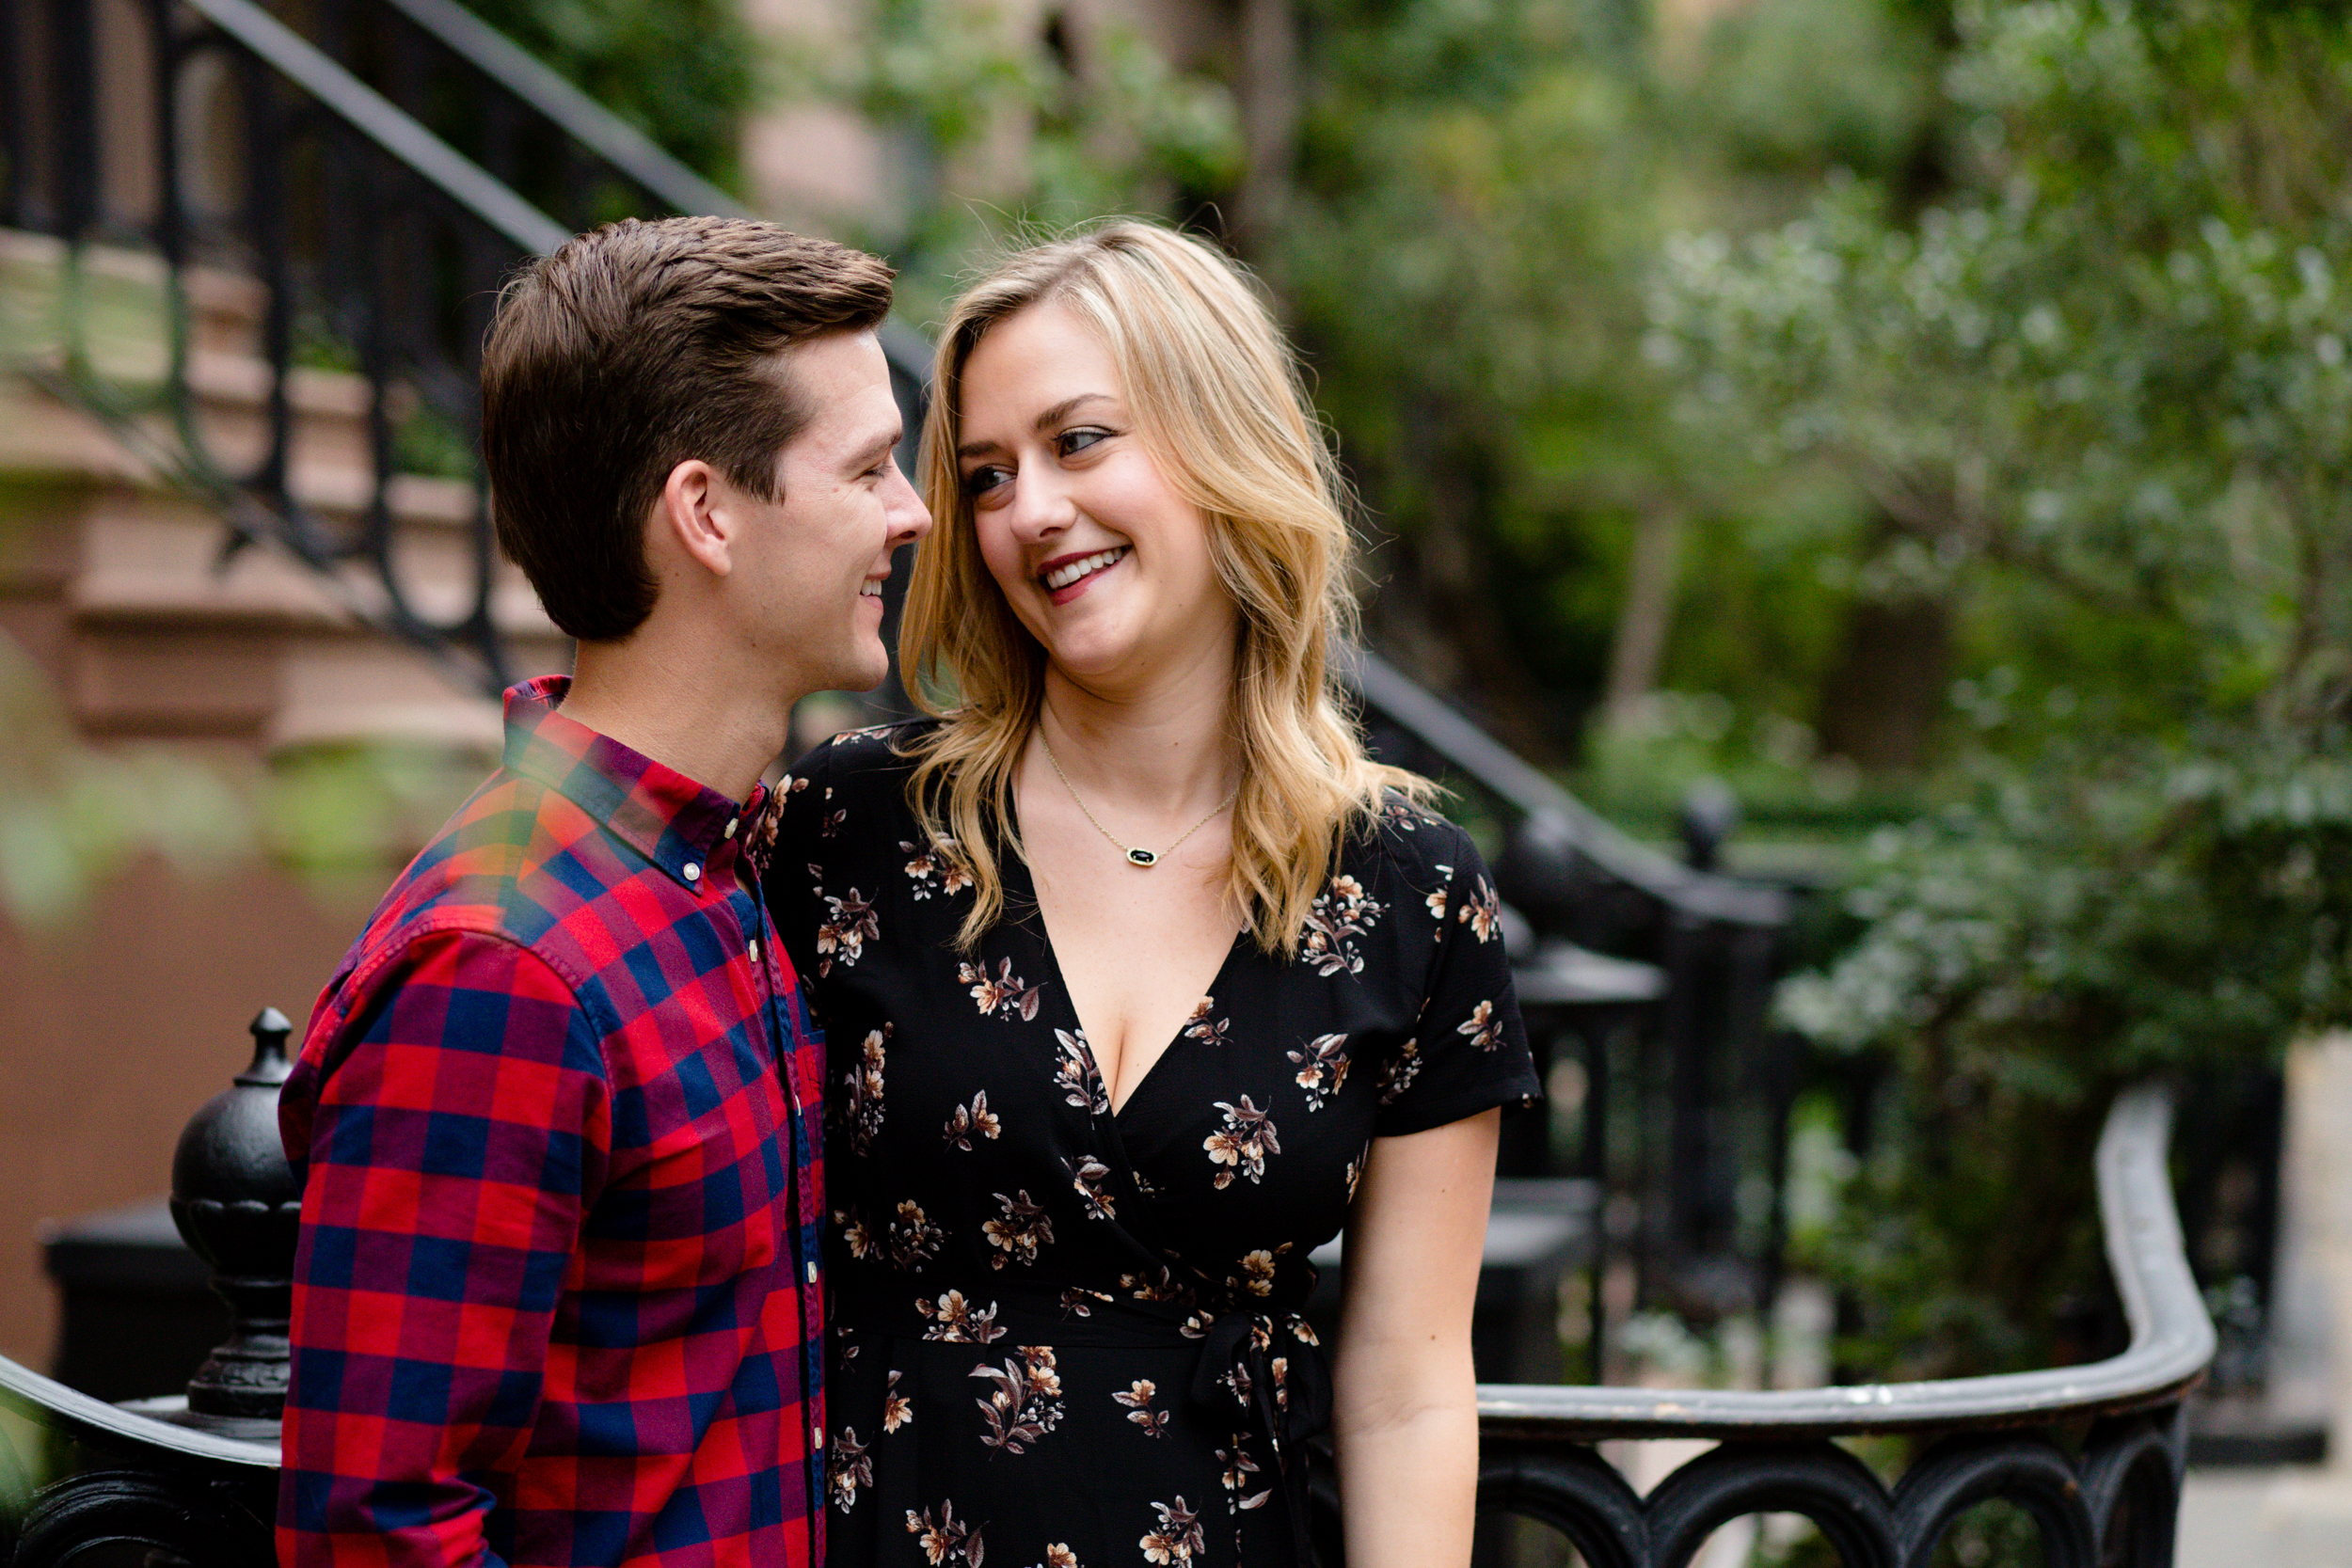 engagement-photography-brooklyn-photographer-14.jpg